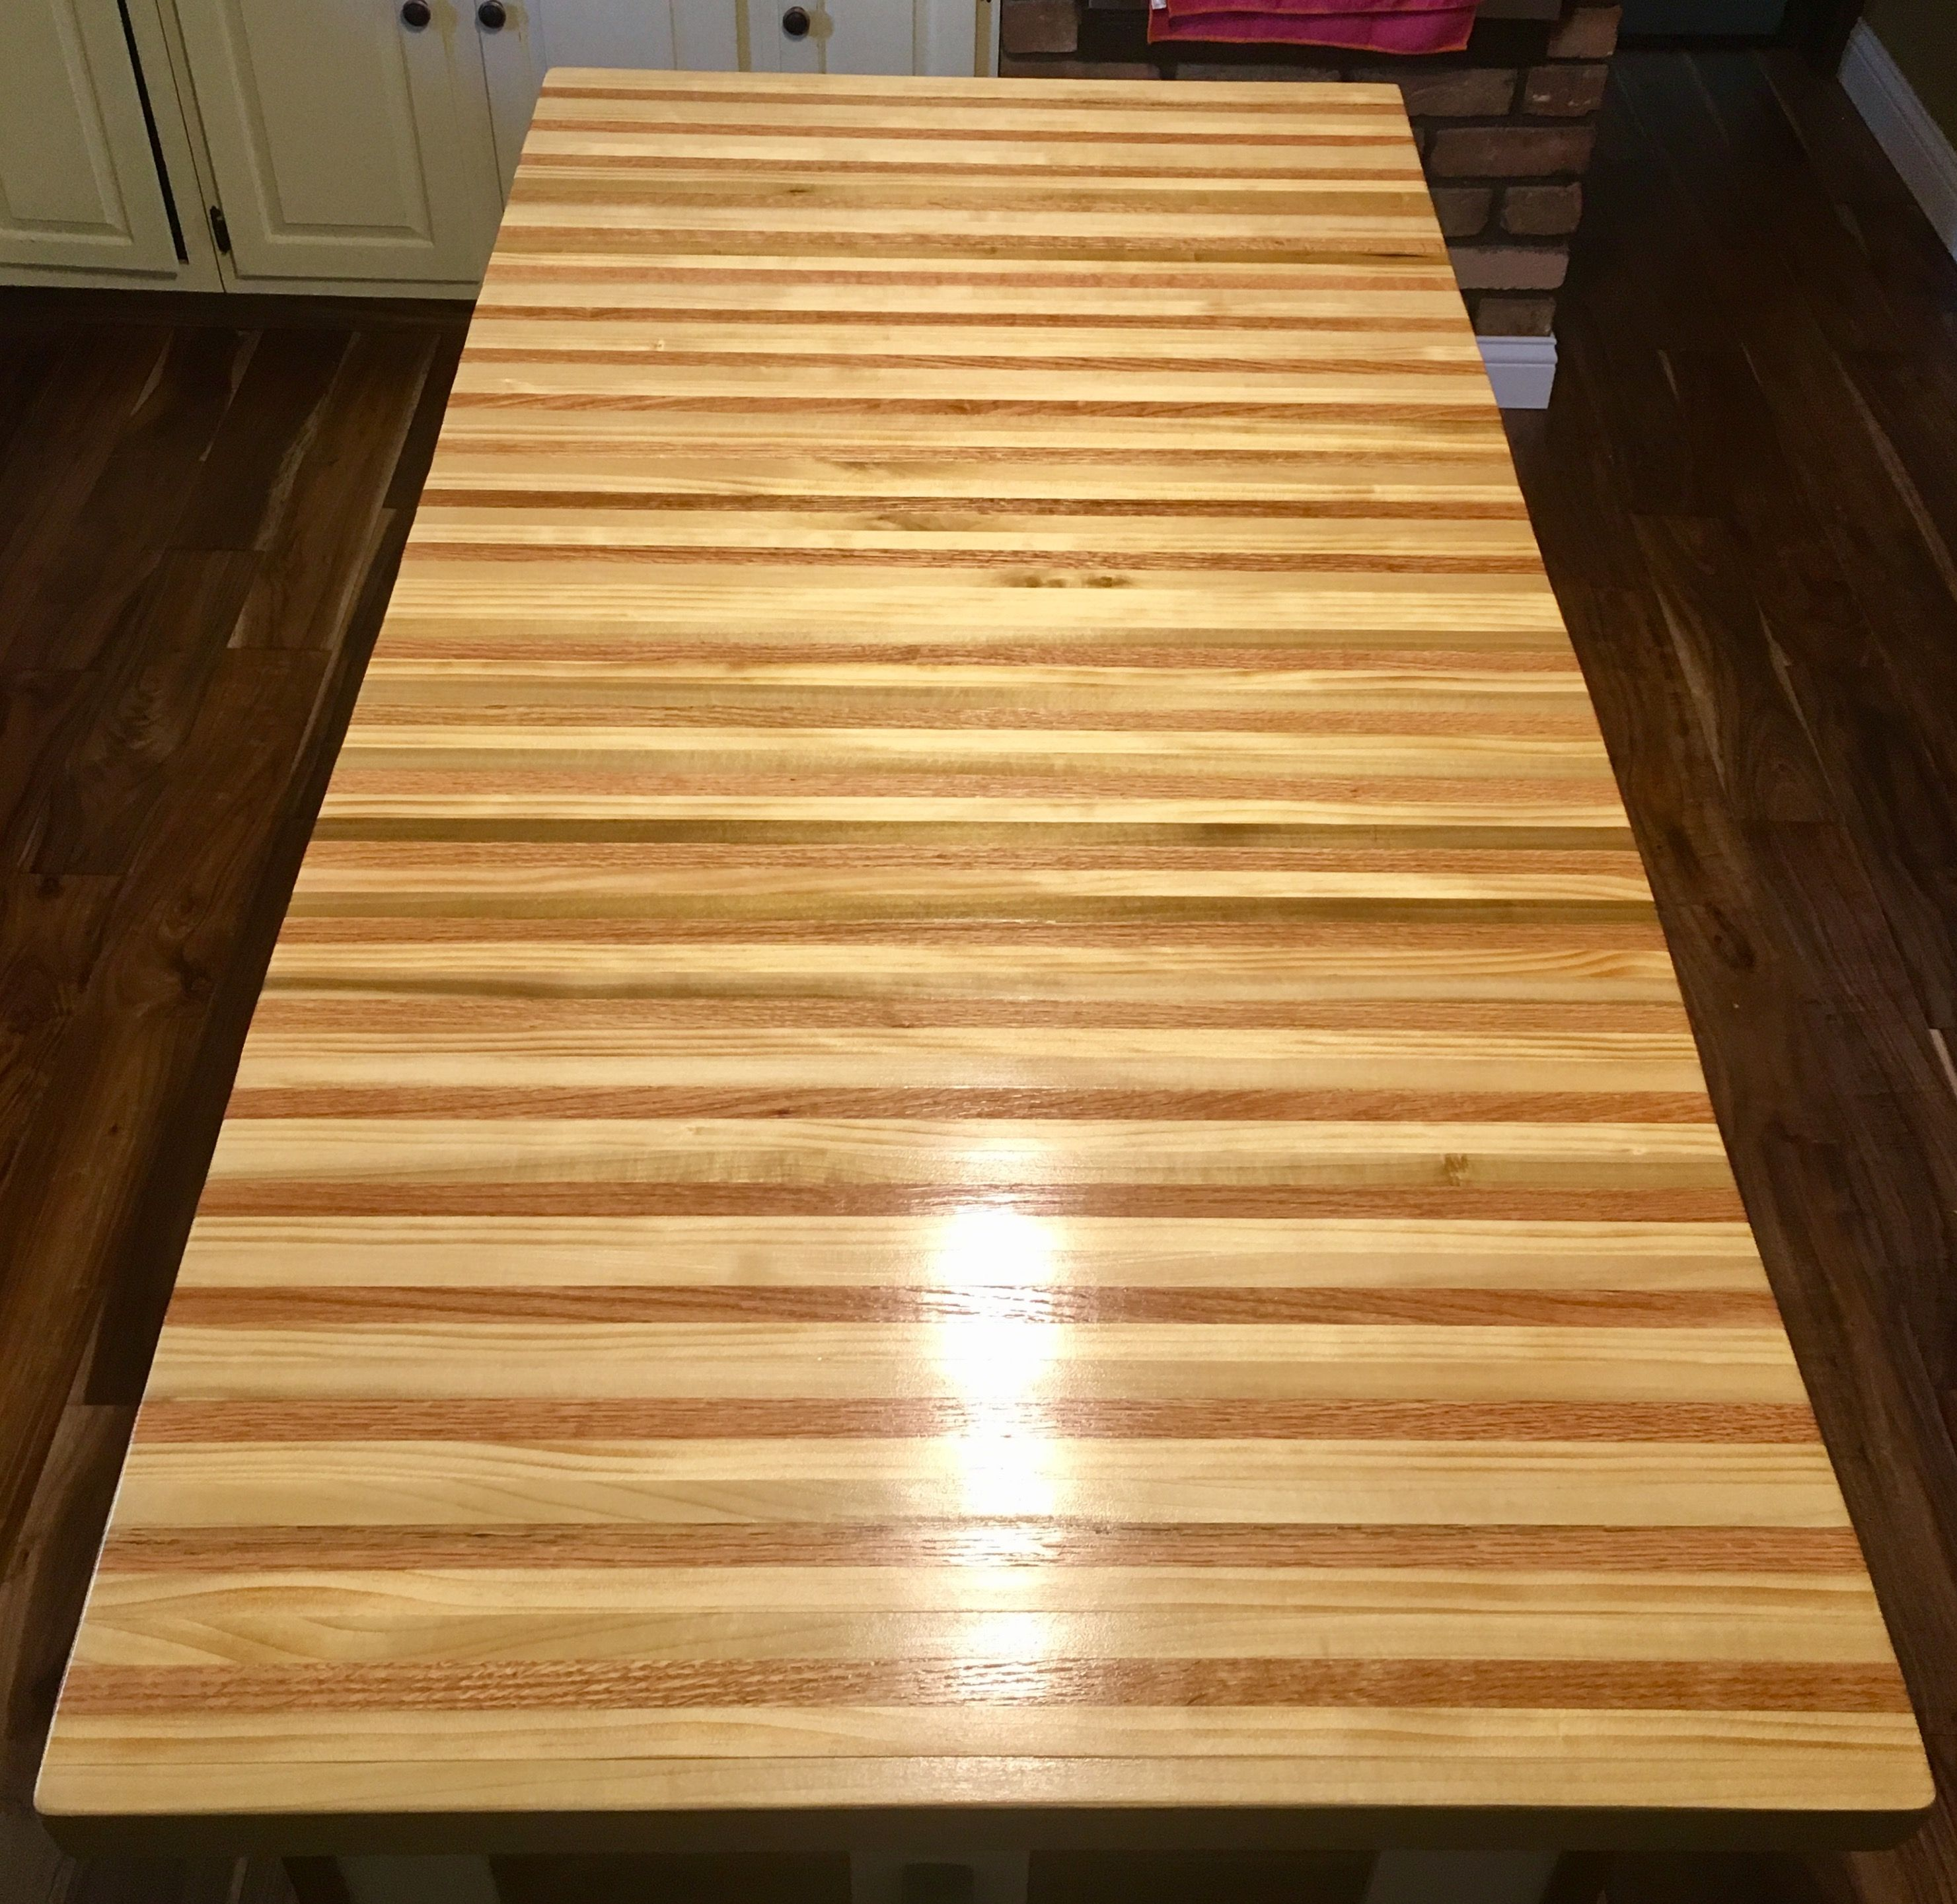 custom made countertop for the kitchen island using red oak